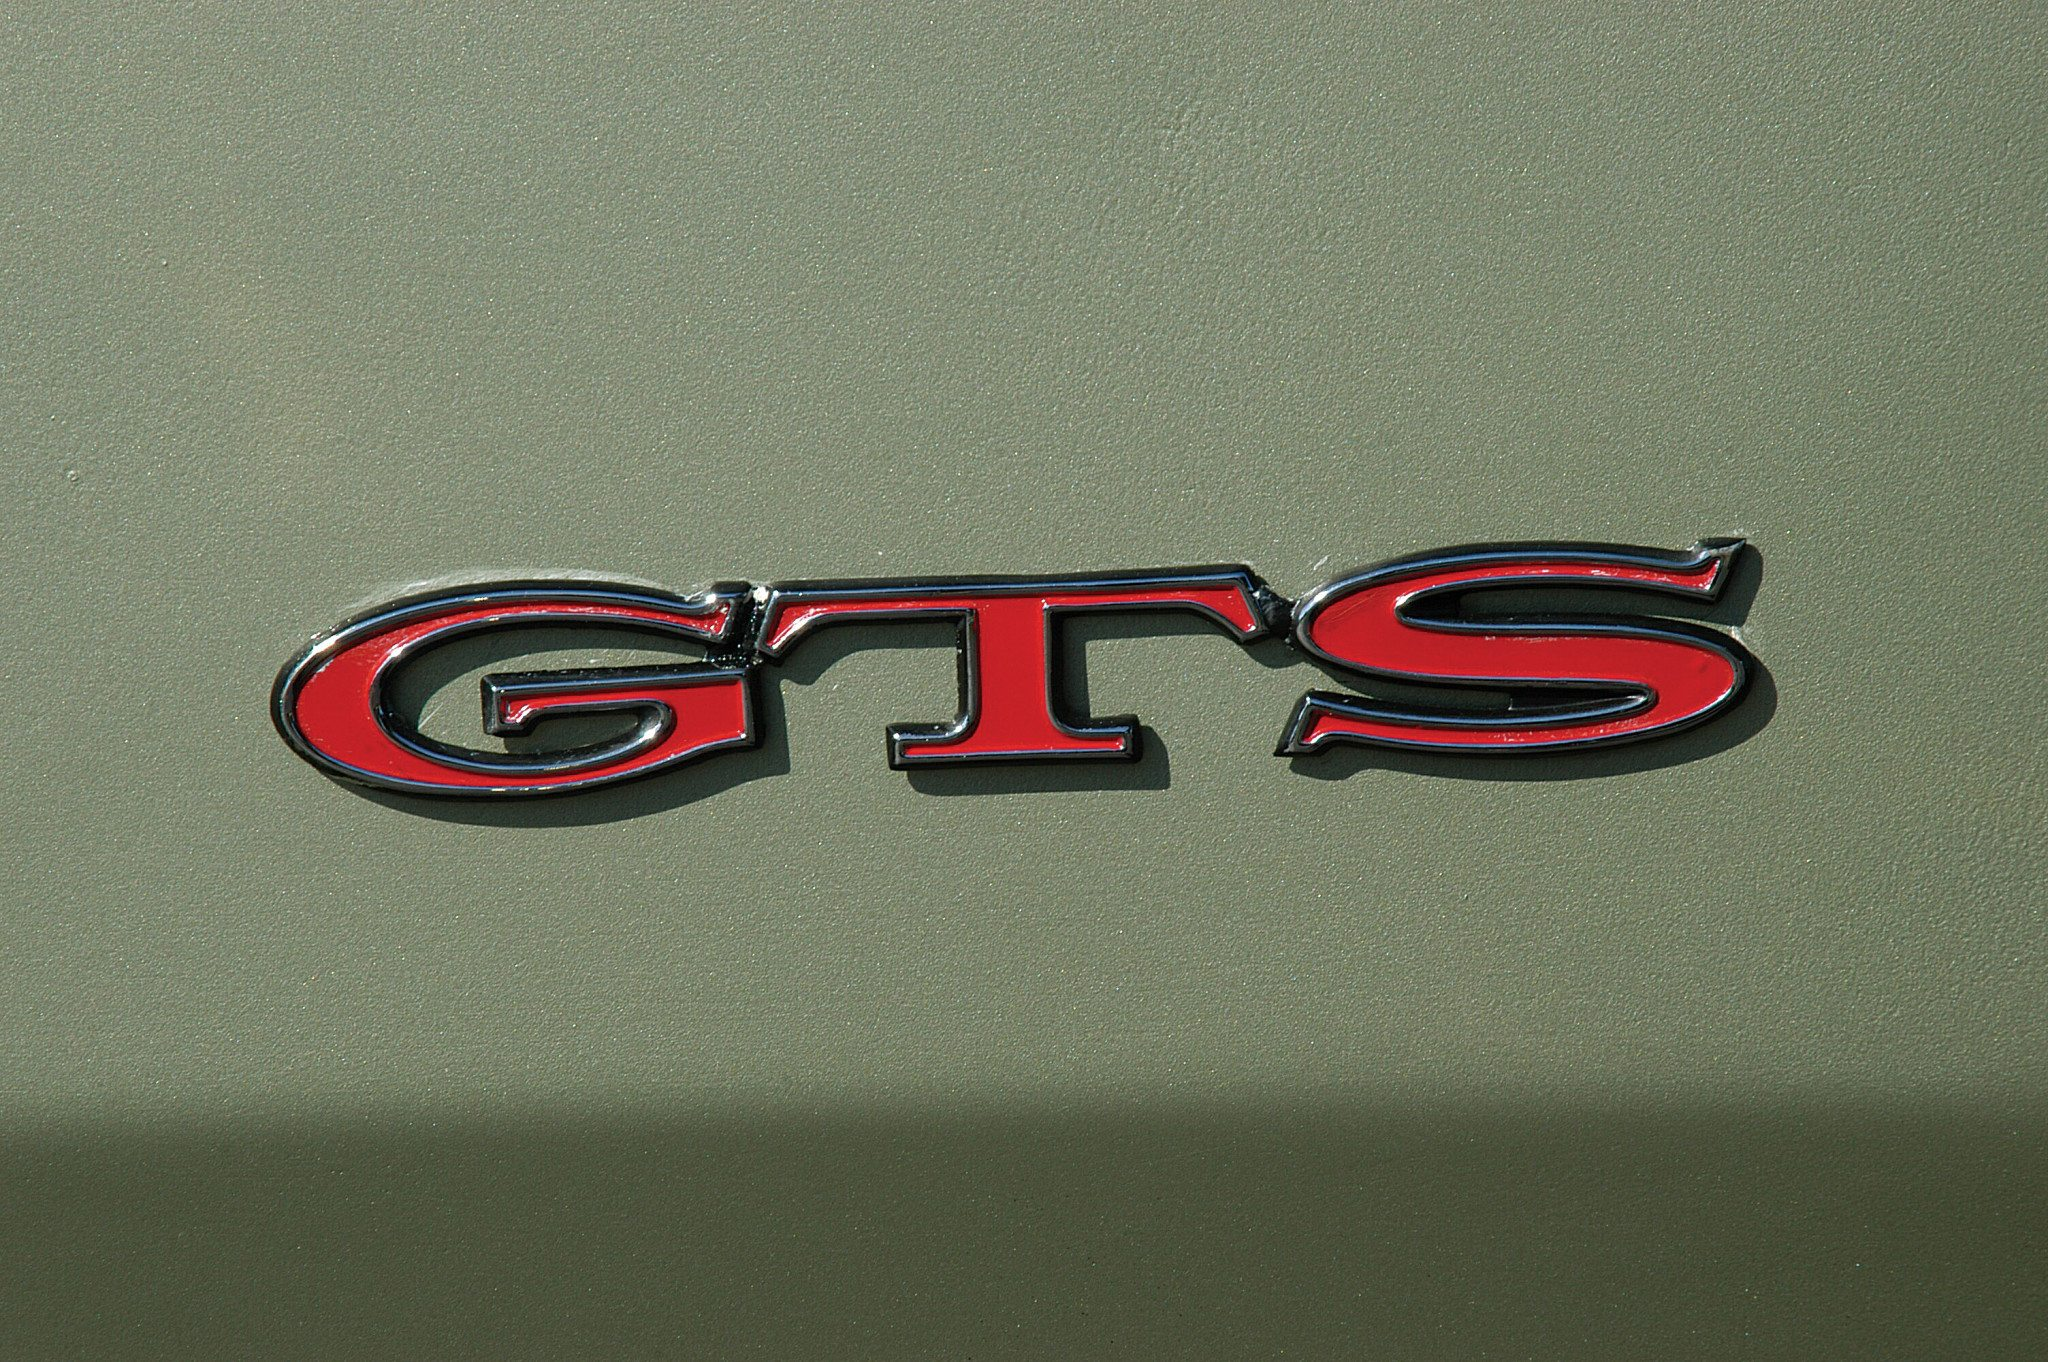 1969 Dodge Dart 340 GTS Badge